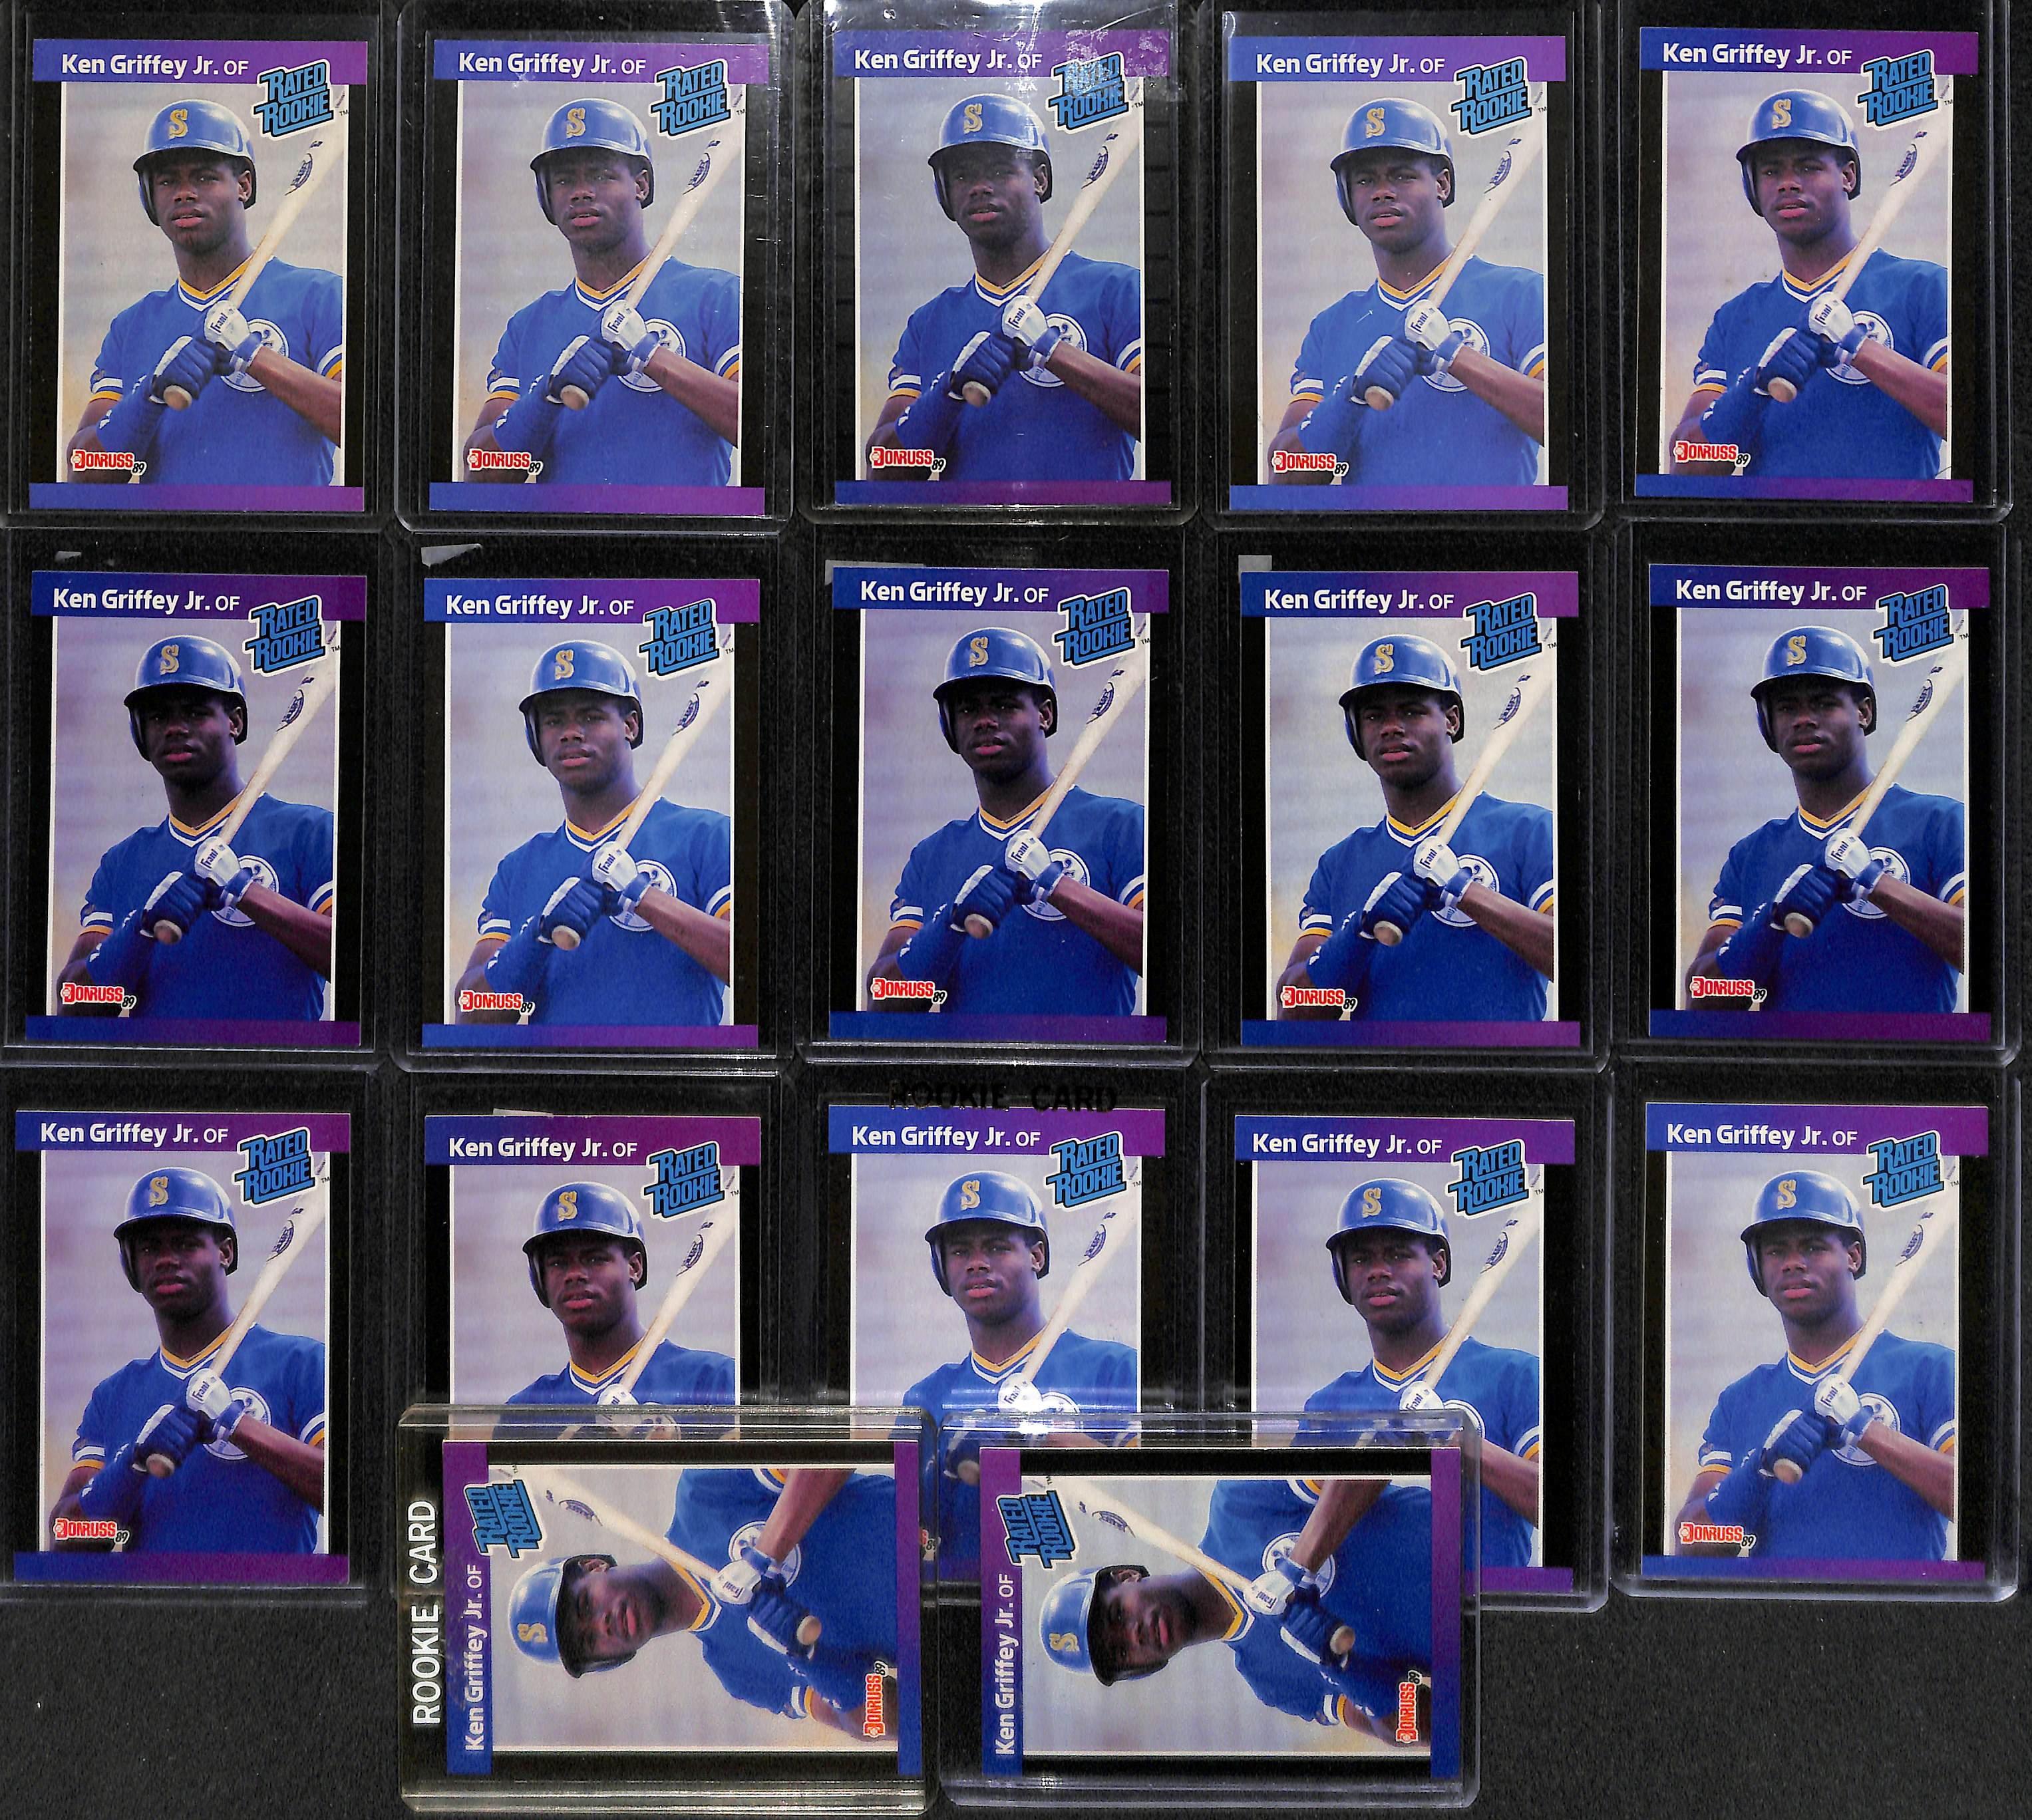 Lot Of 5 Rookie Baseball Cards With Ken Griffey Jr 1989